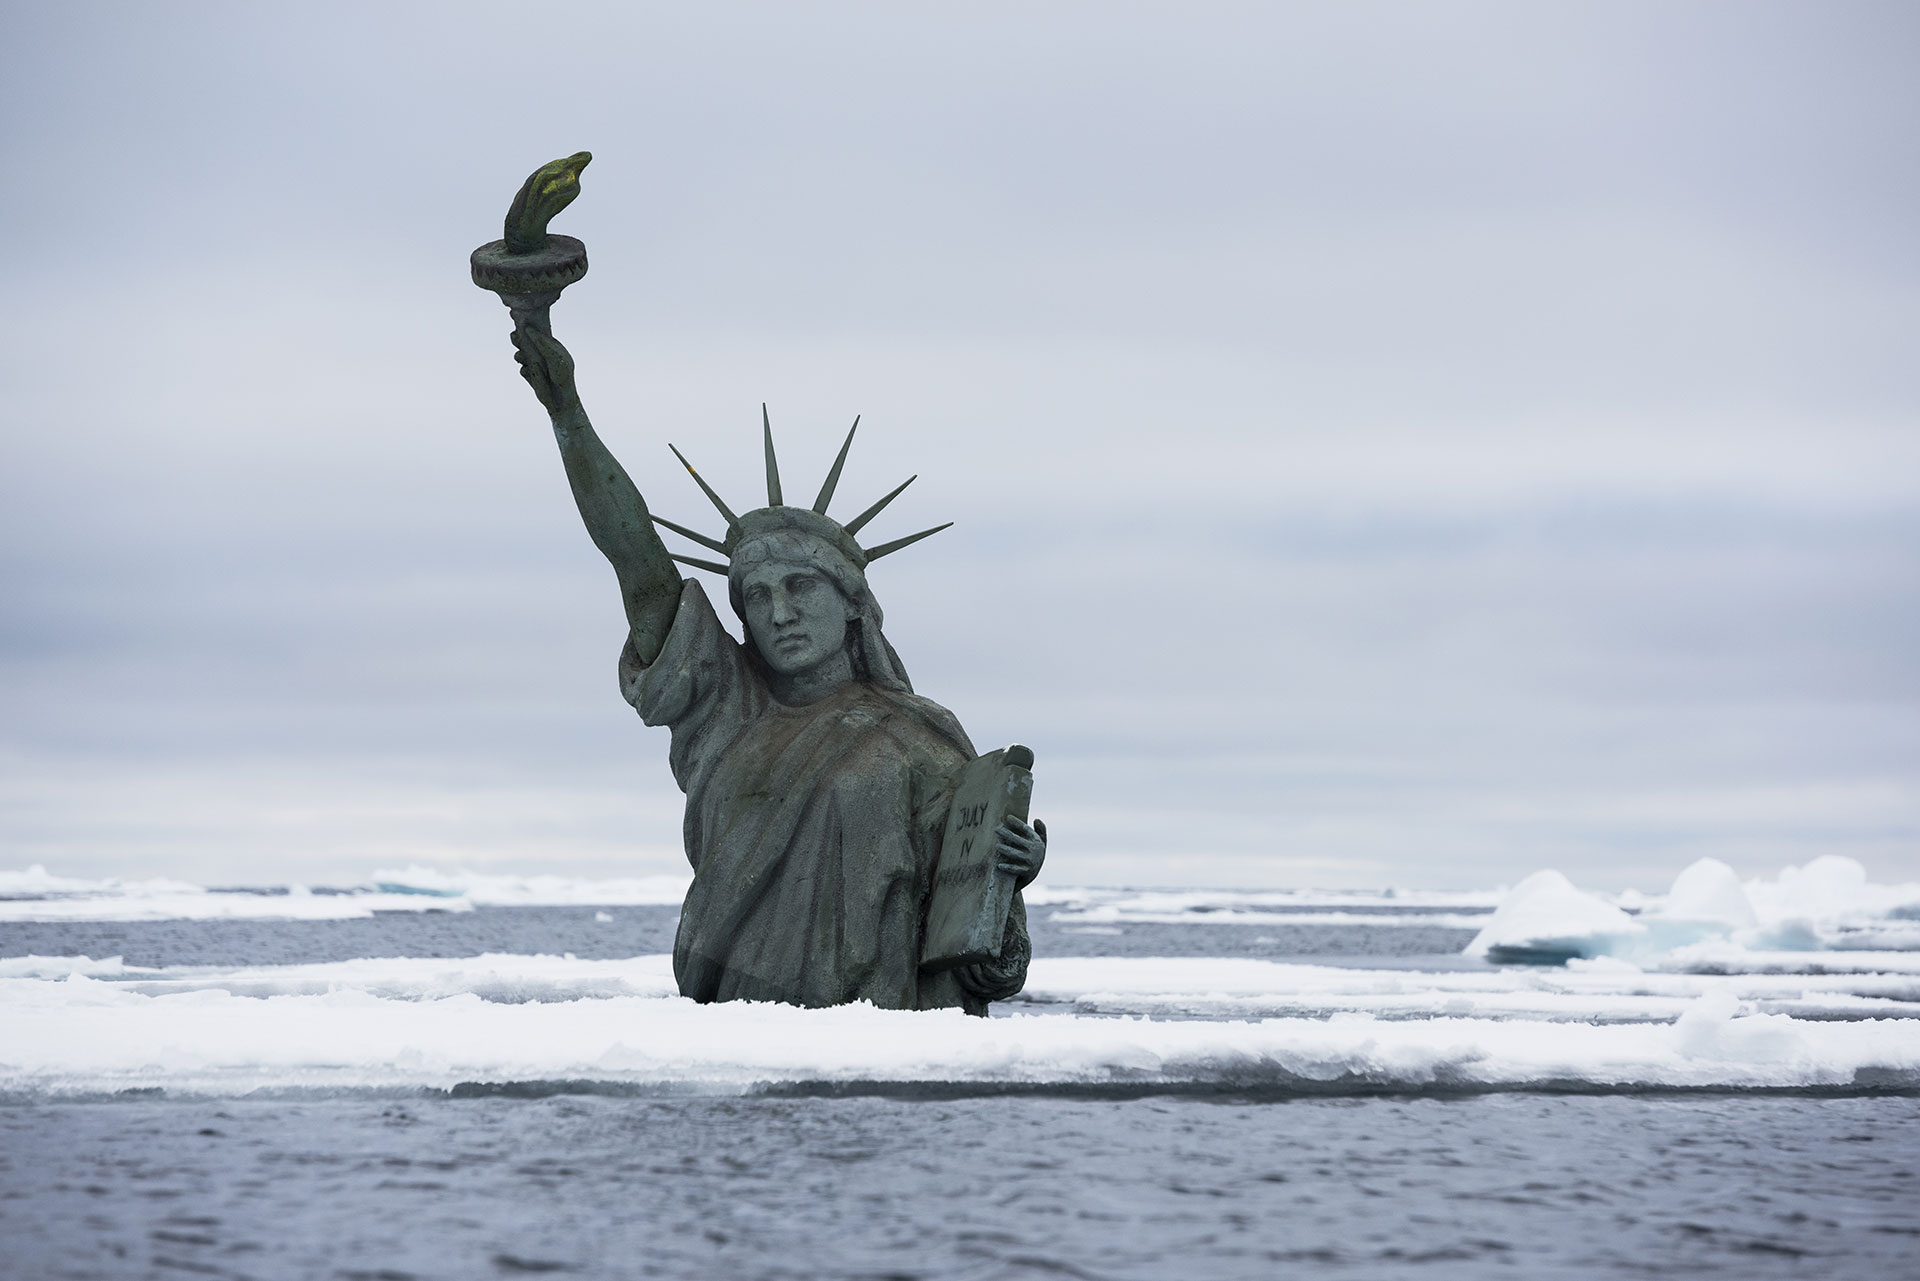 Statue of Liberty action at the Arctic Sea ice edge. © Christian Åslund / Greenpeace